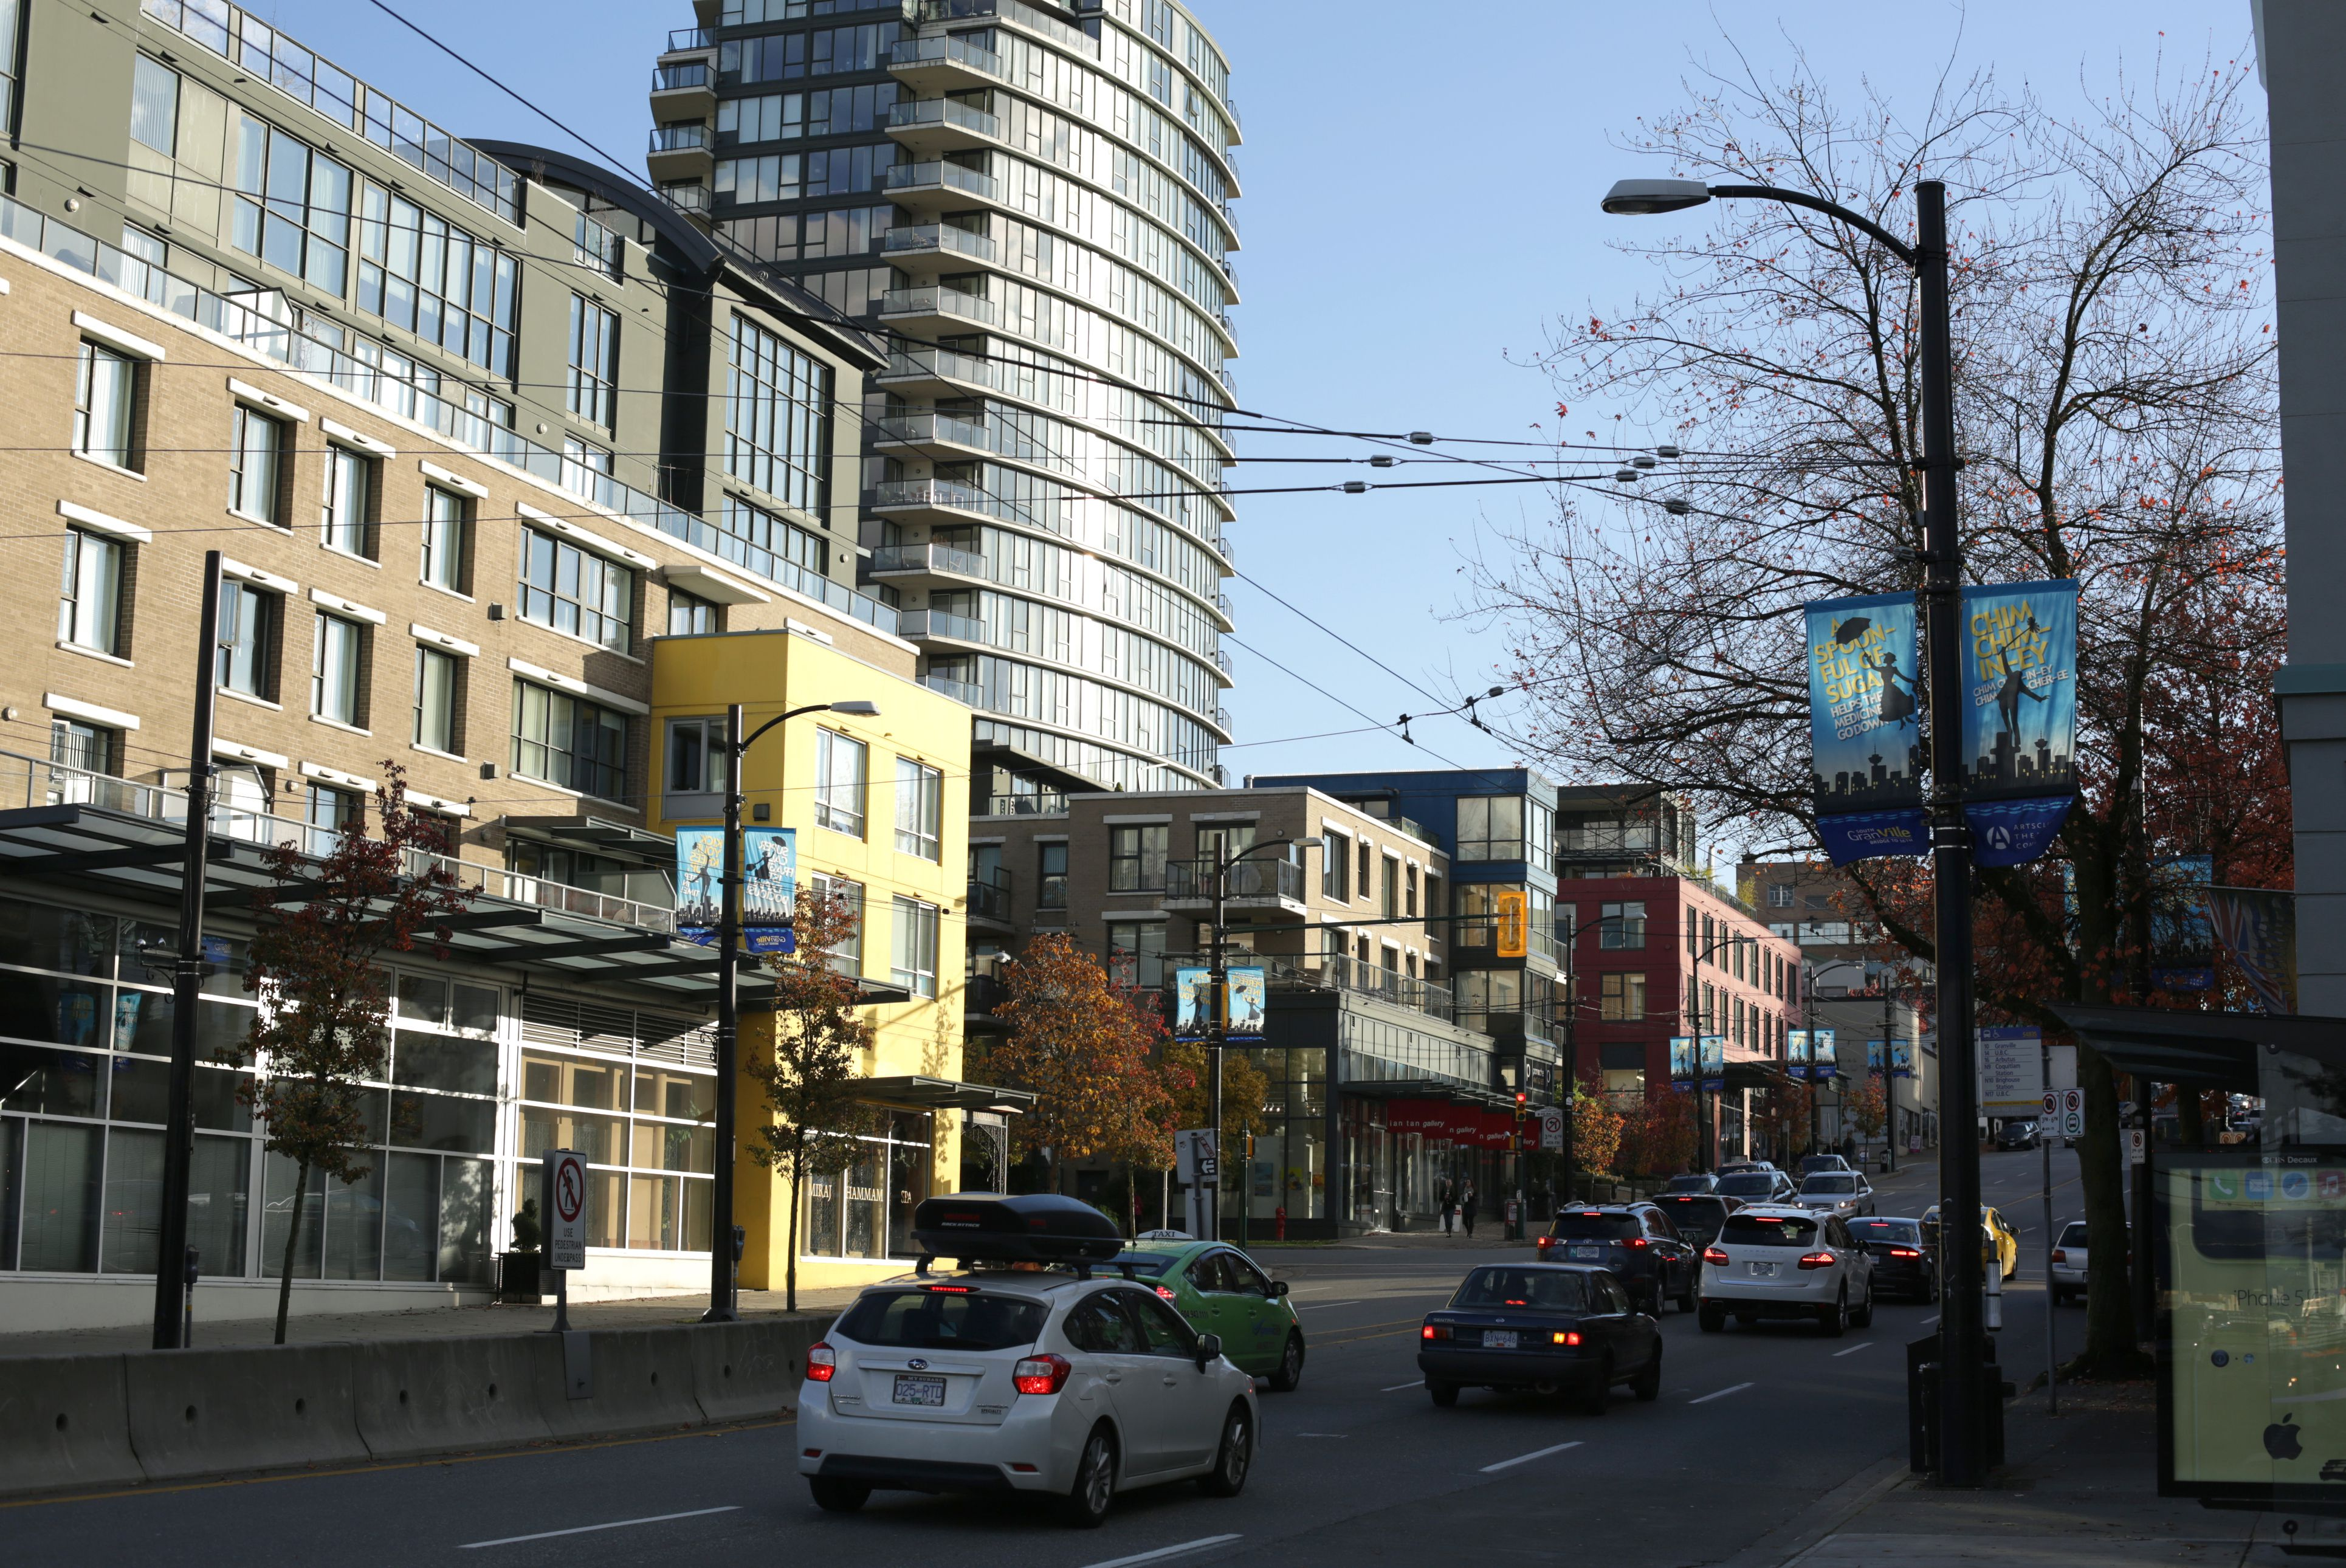 Traffic on South Granville Rise in Vancouver, Canada, Autumn Day